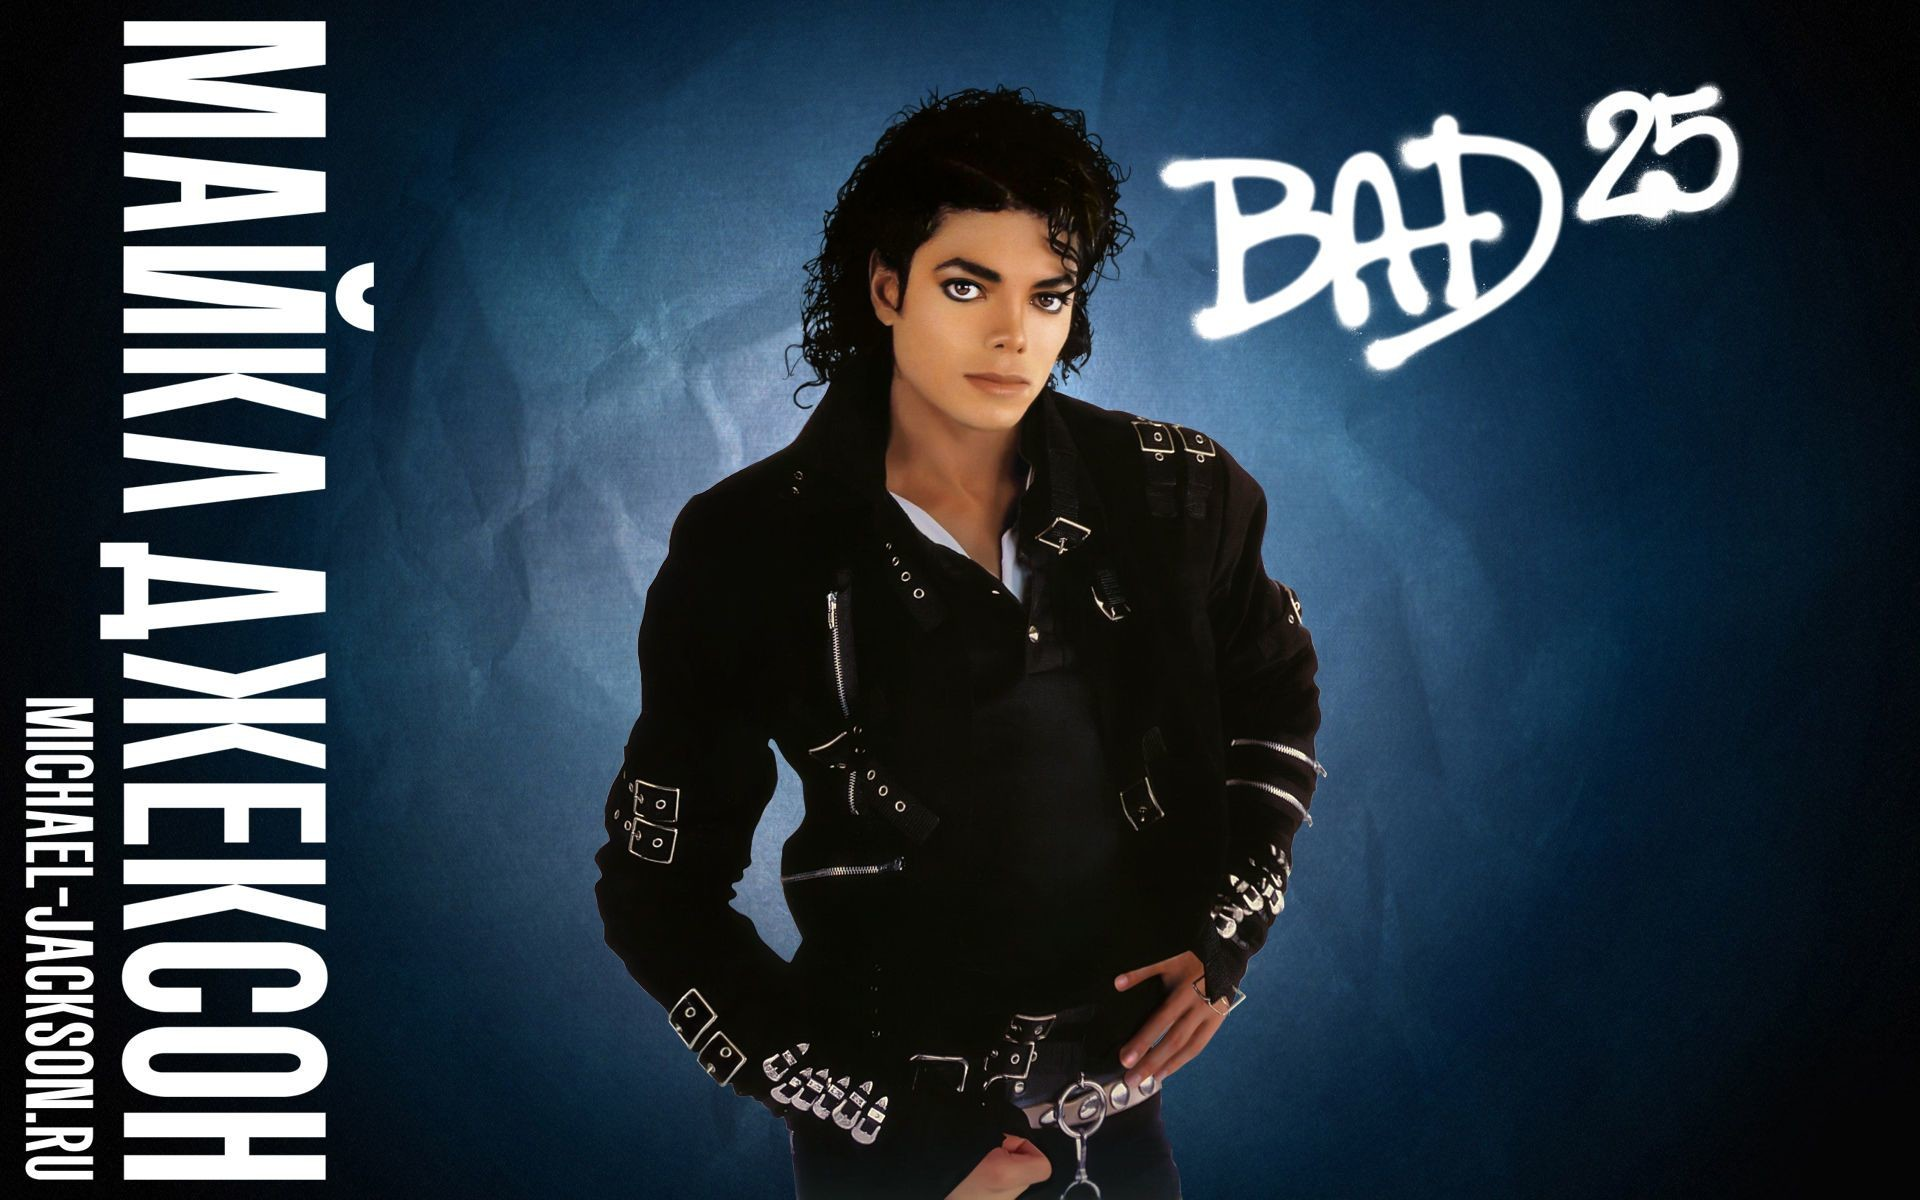 1920x1200 Michael Jackson Bad Wallpapers High Quality MediumSpace96 Download 1920x1080